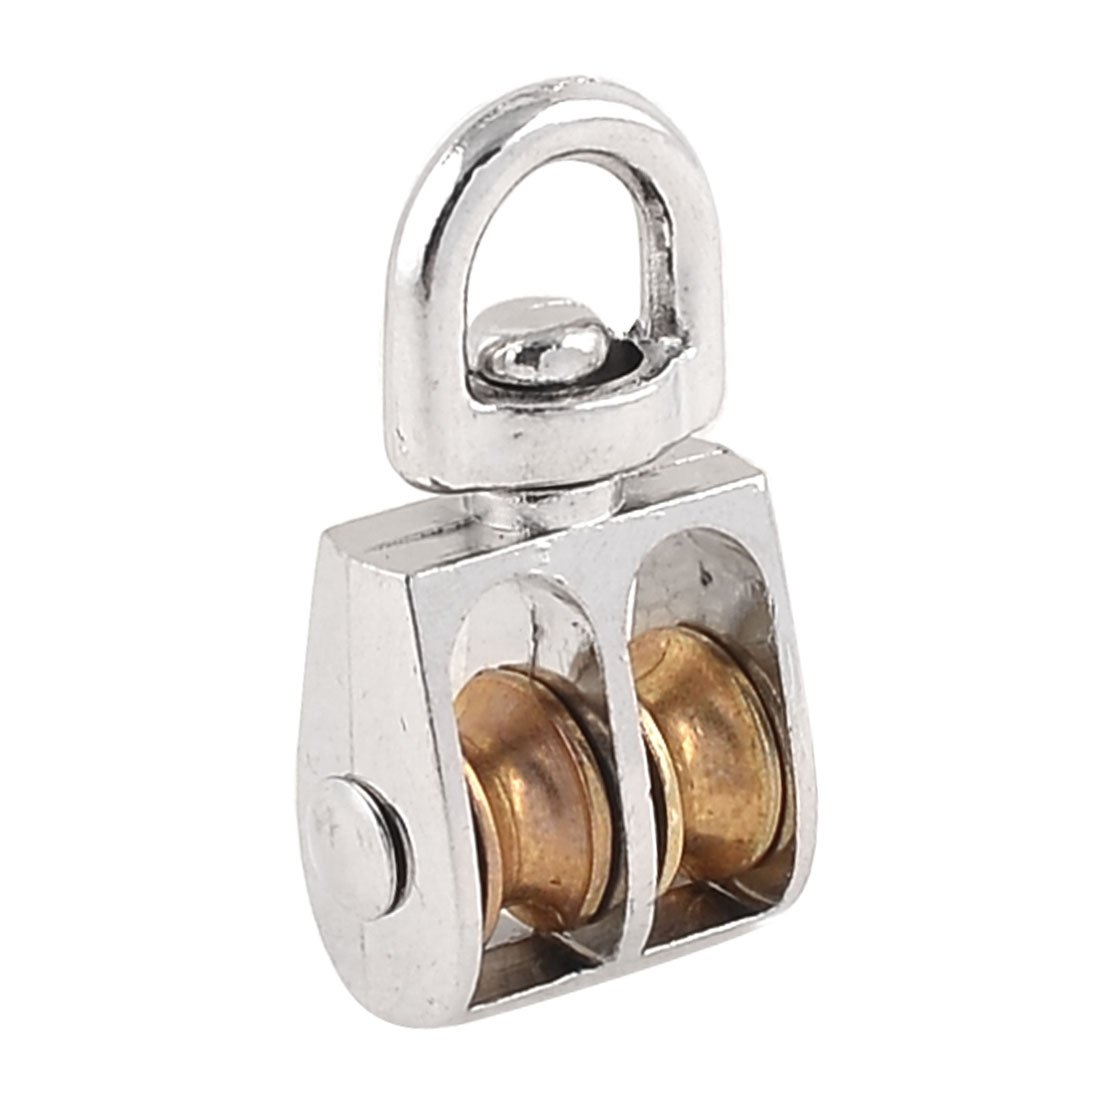 Sourcingmap a14010300ux0501 Double Wheel Hoist Wire Rope Pulley Block Tackle, Gold Tone